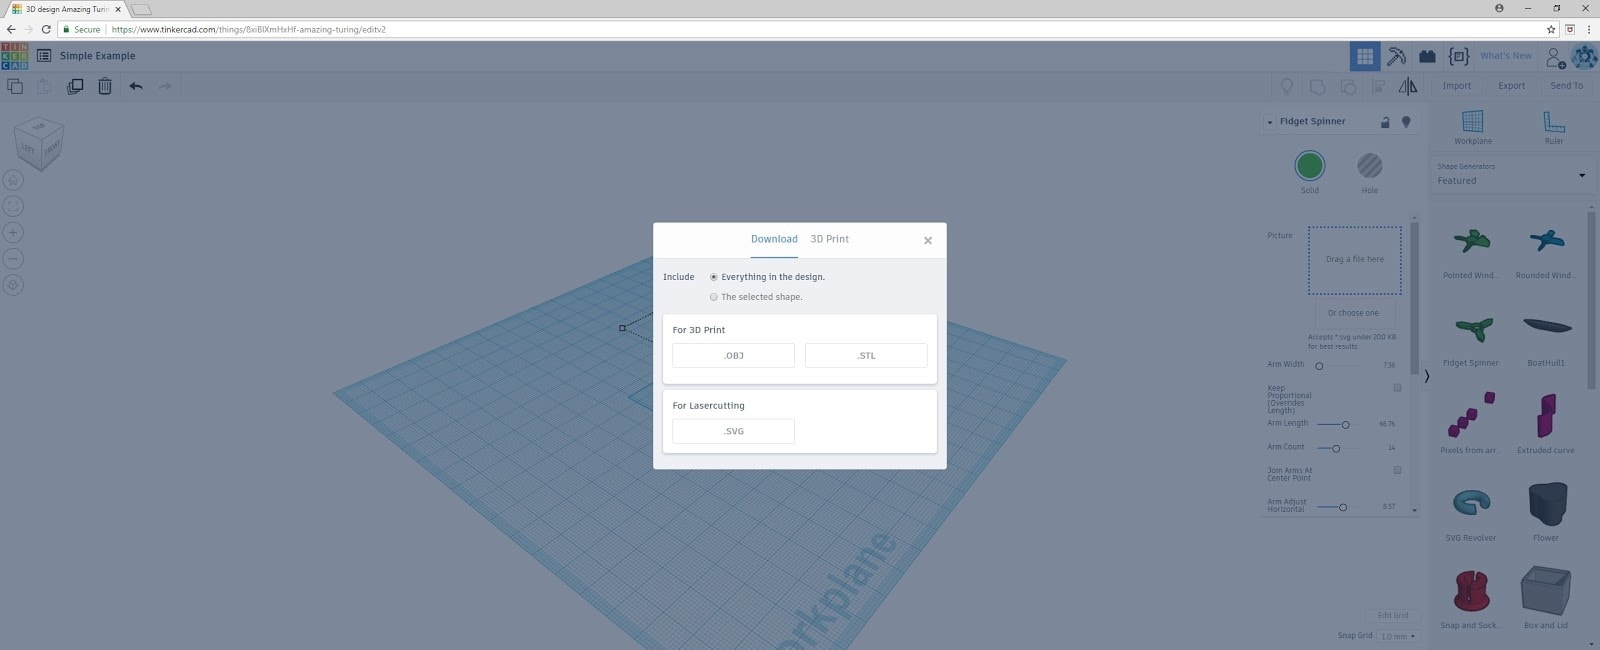 TinkerCAD6 | Making a 3D Object with TinkerCAD by Tracy Colello